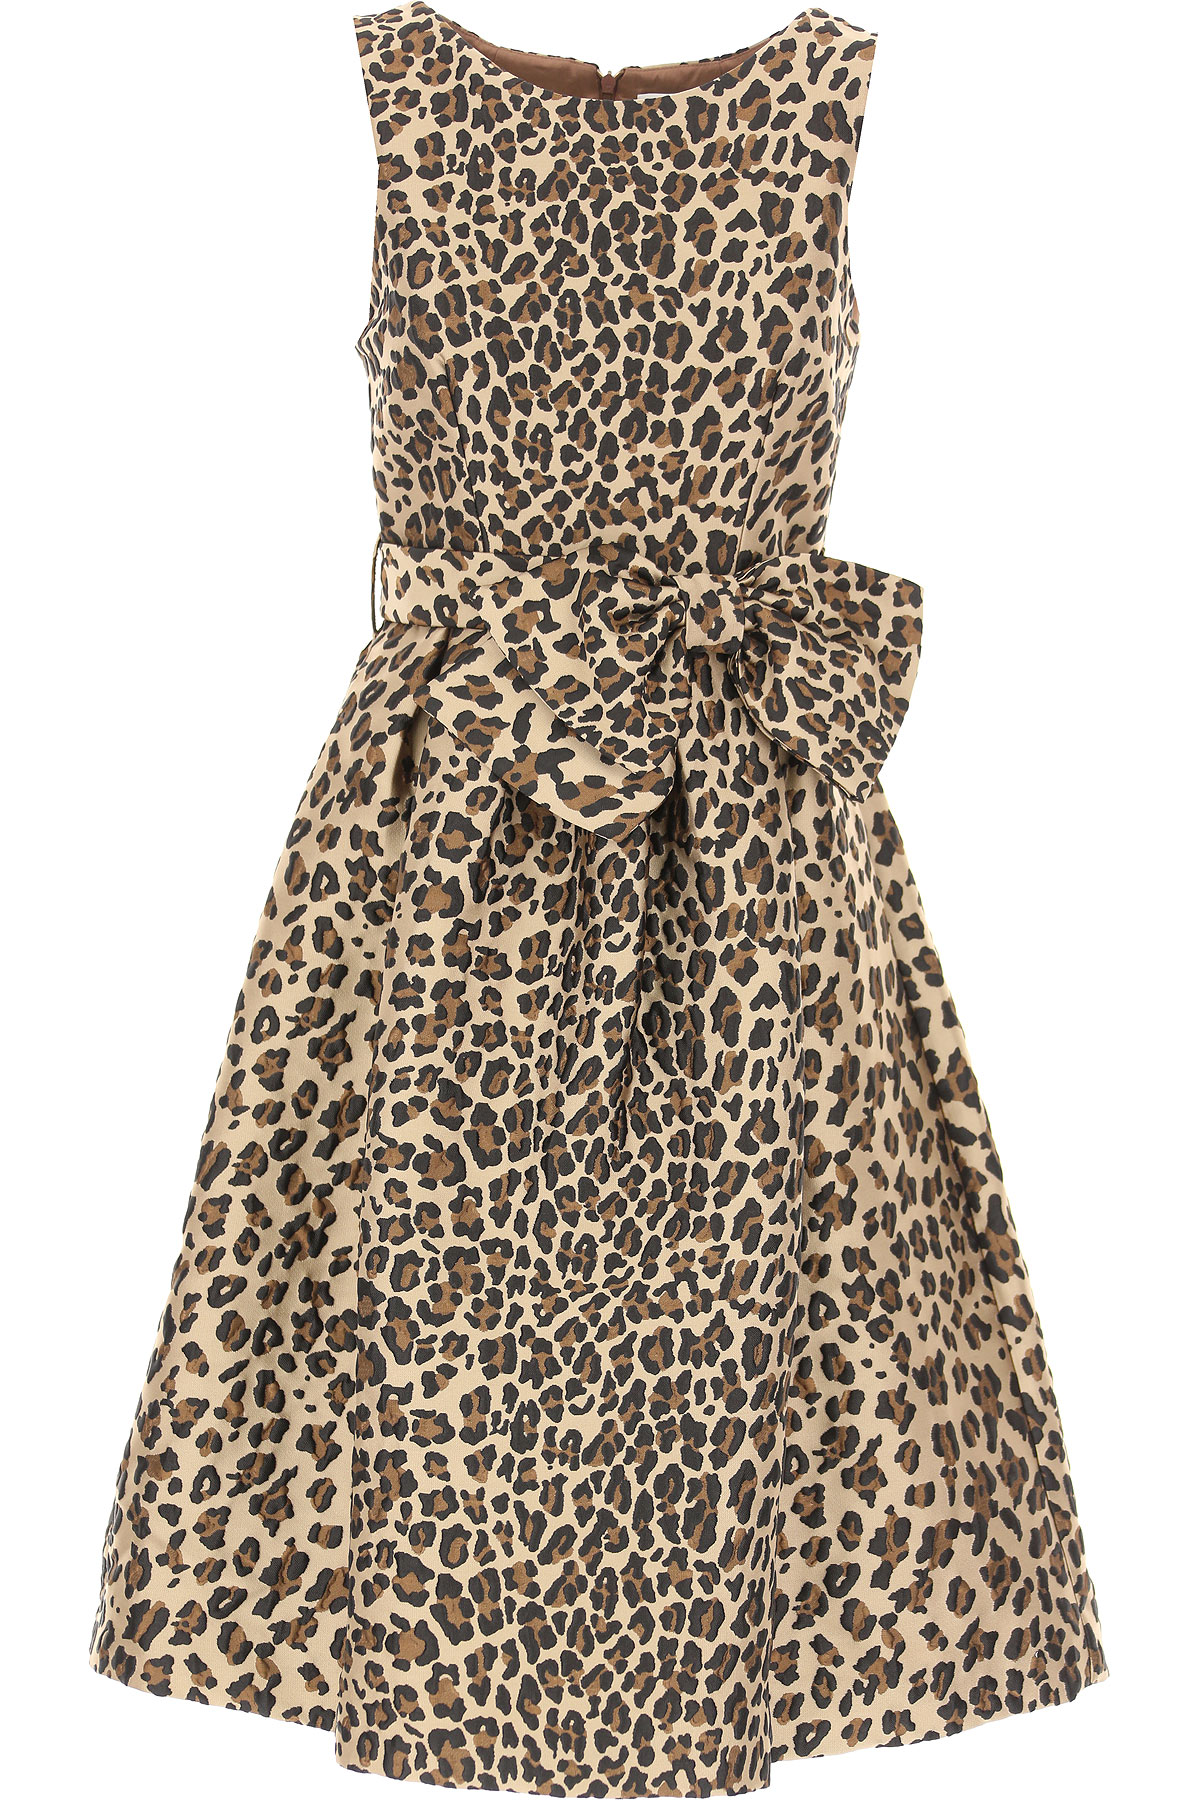 Image of P.A.R.O.S.H. Dress for Women, Evening Cocktail Party, Leopard, polyester, 2017, 2 4 6